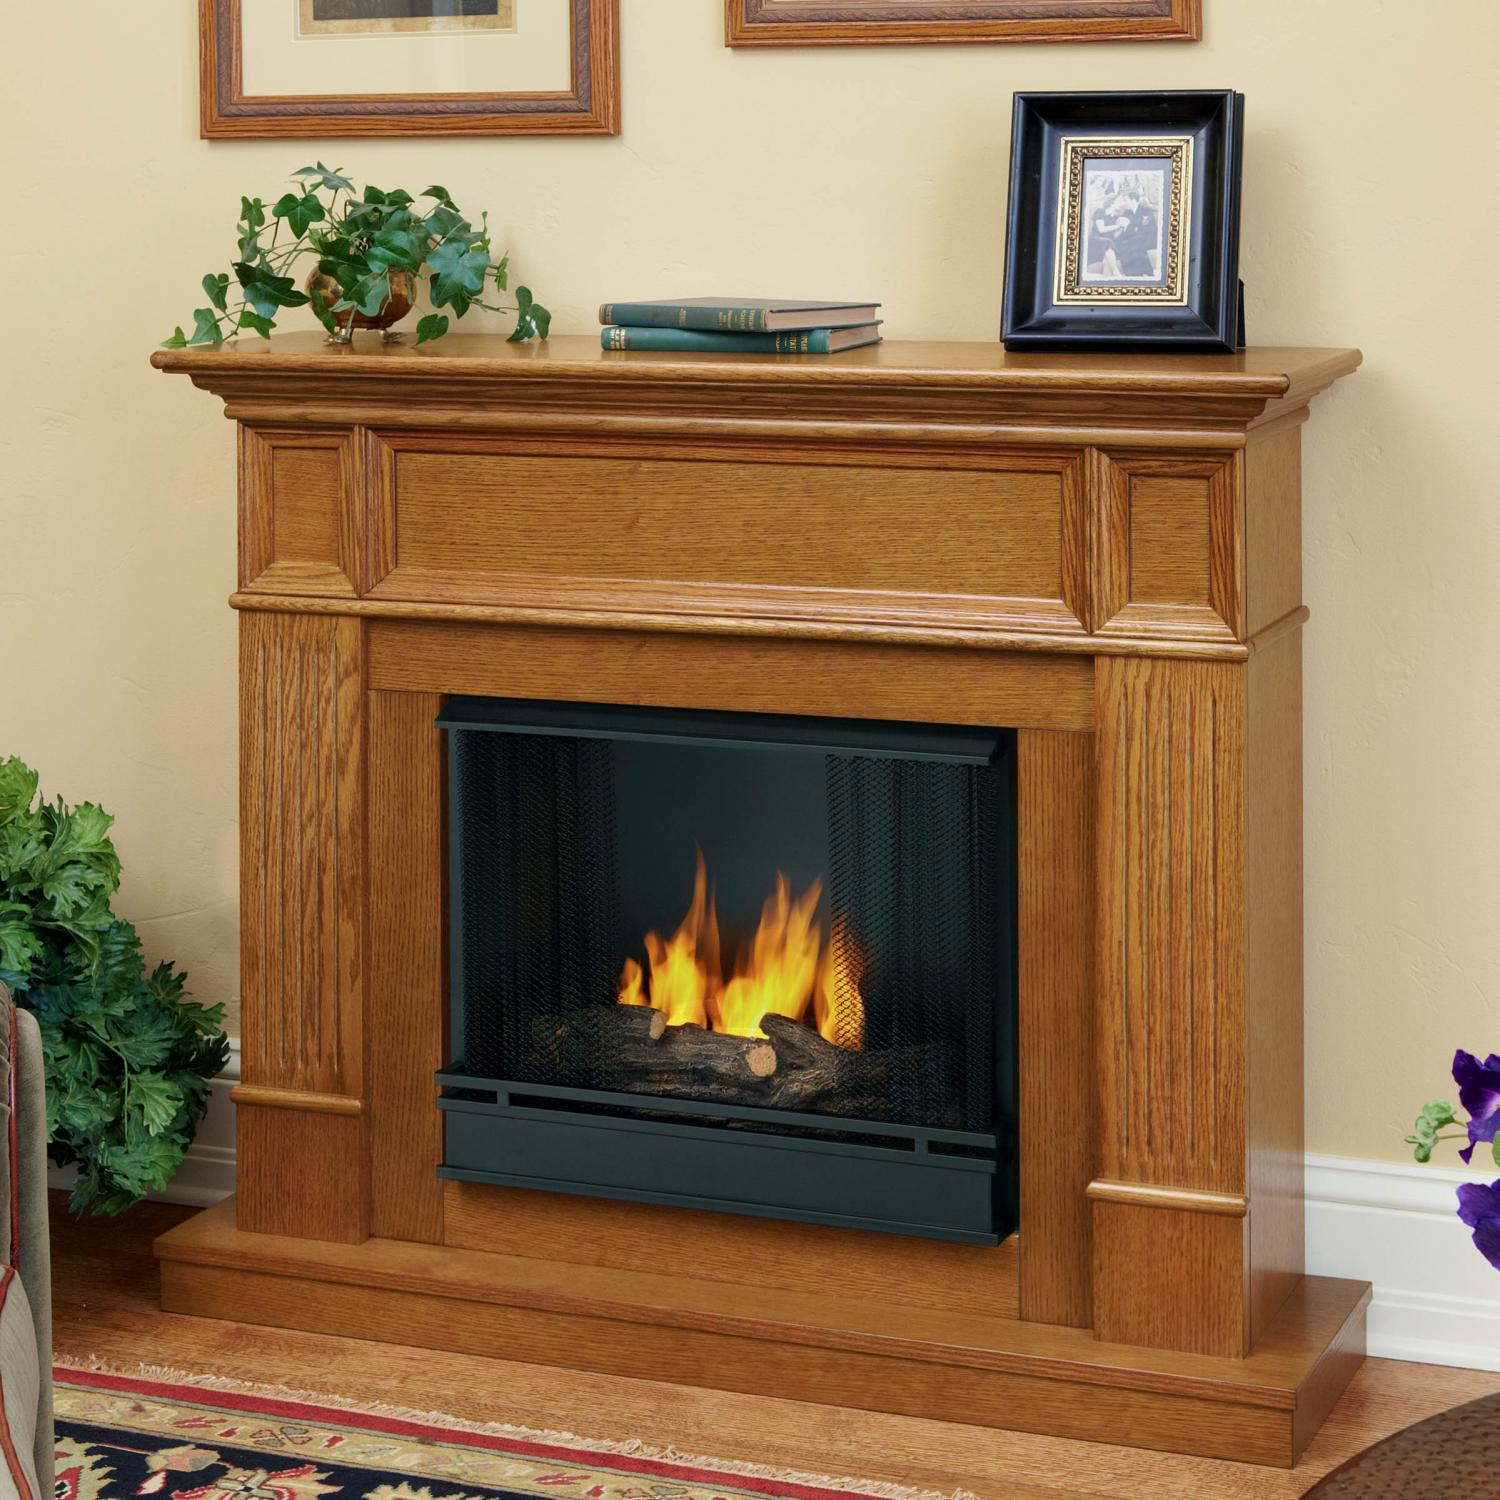 Picture of Real Flame Camden 45-Inch Gel Fireplace - Light Oak